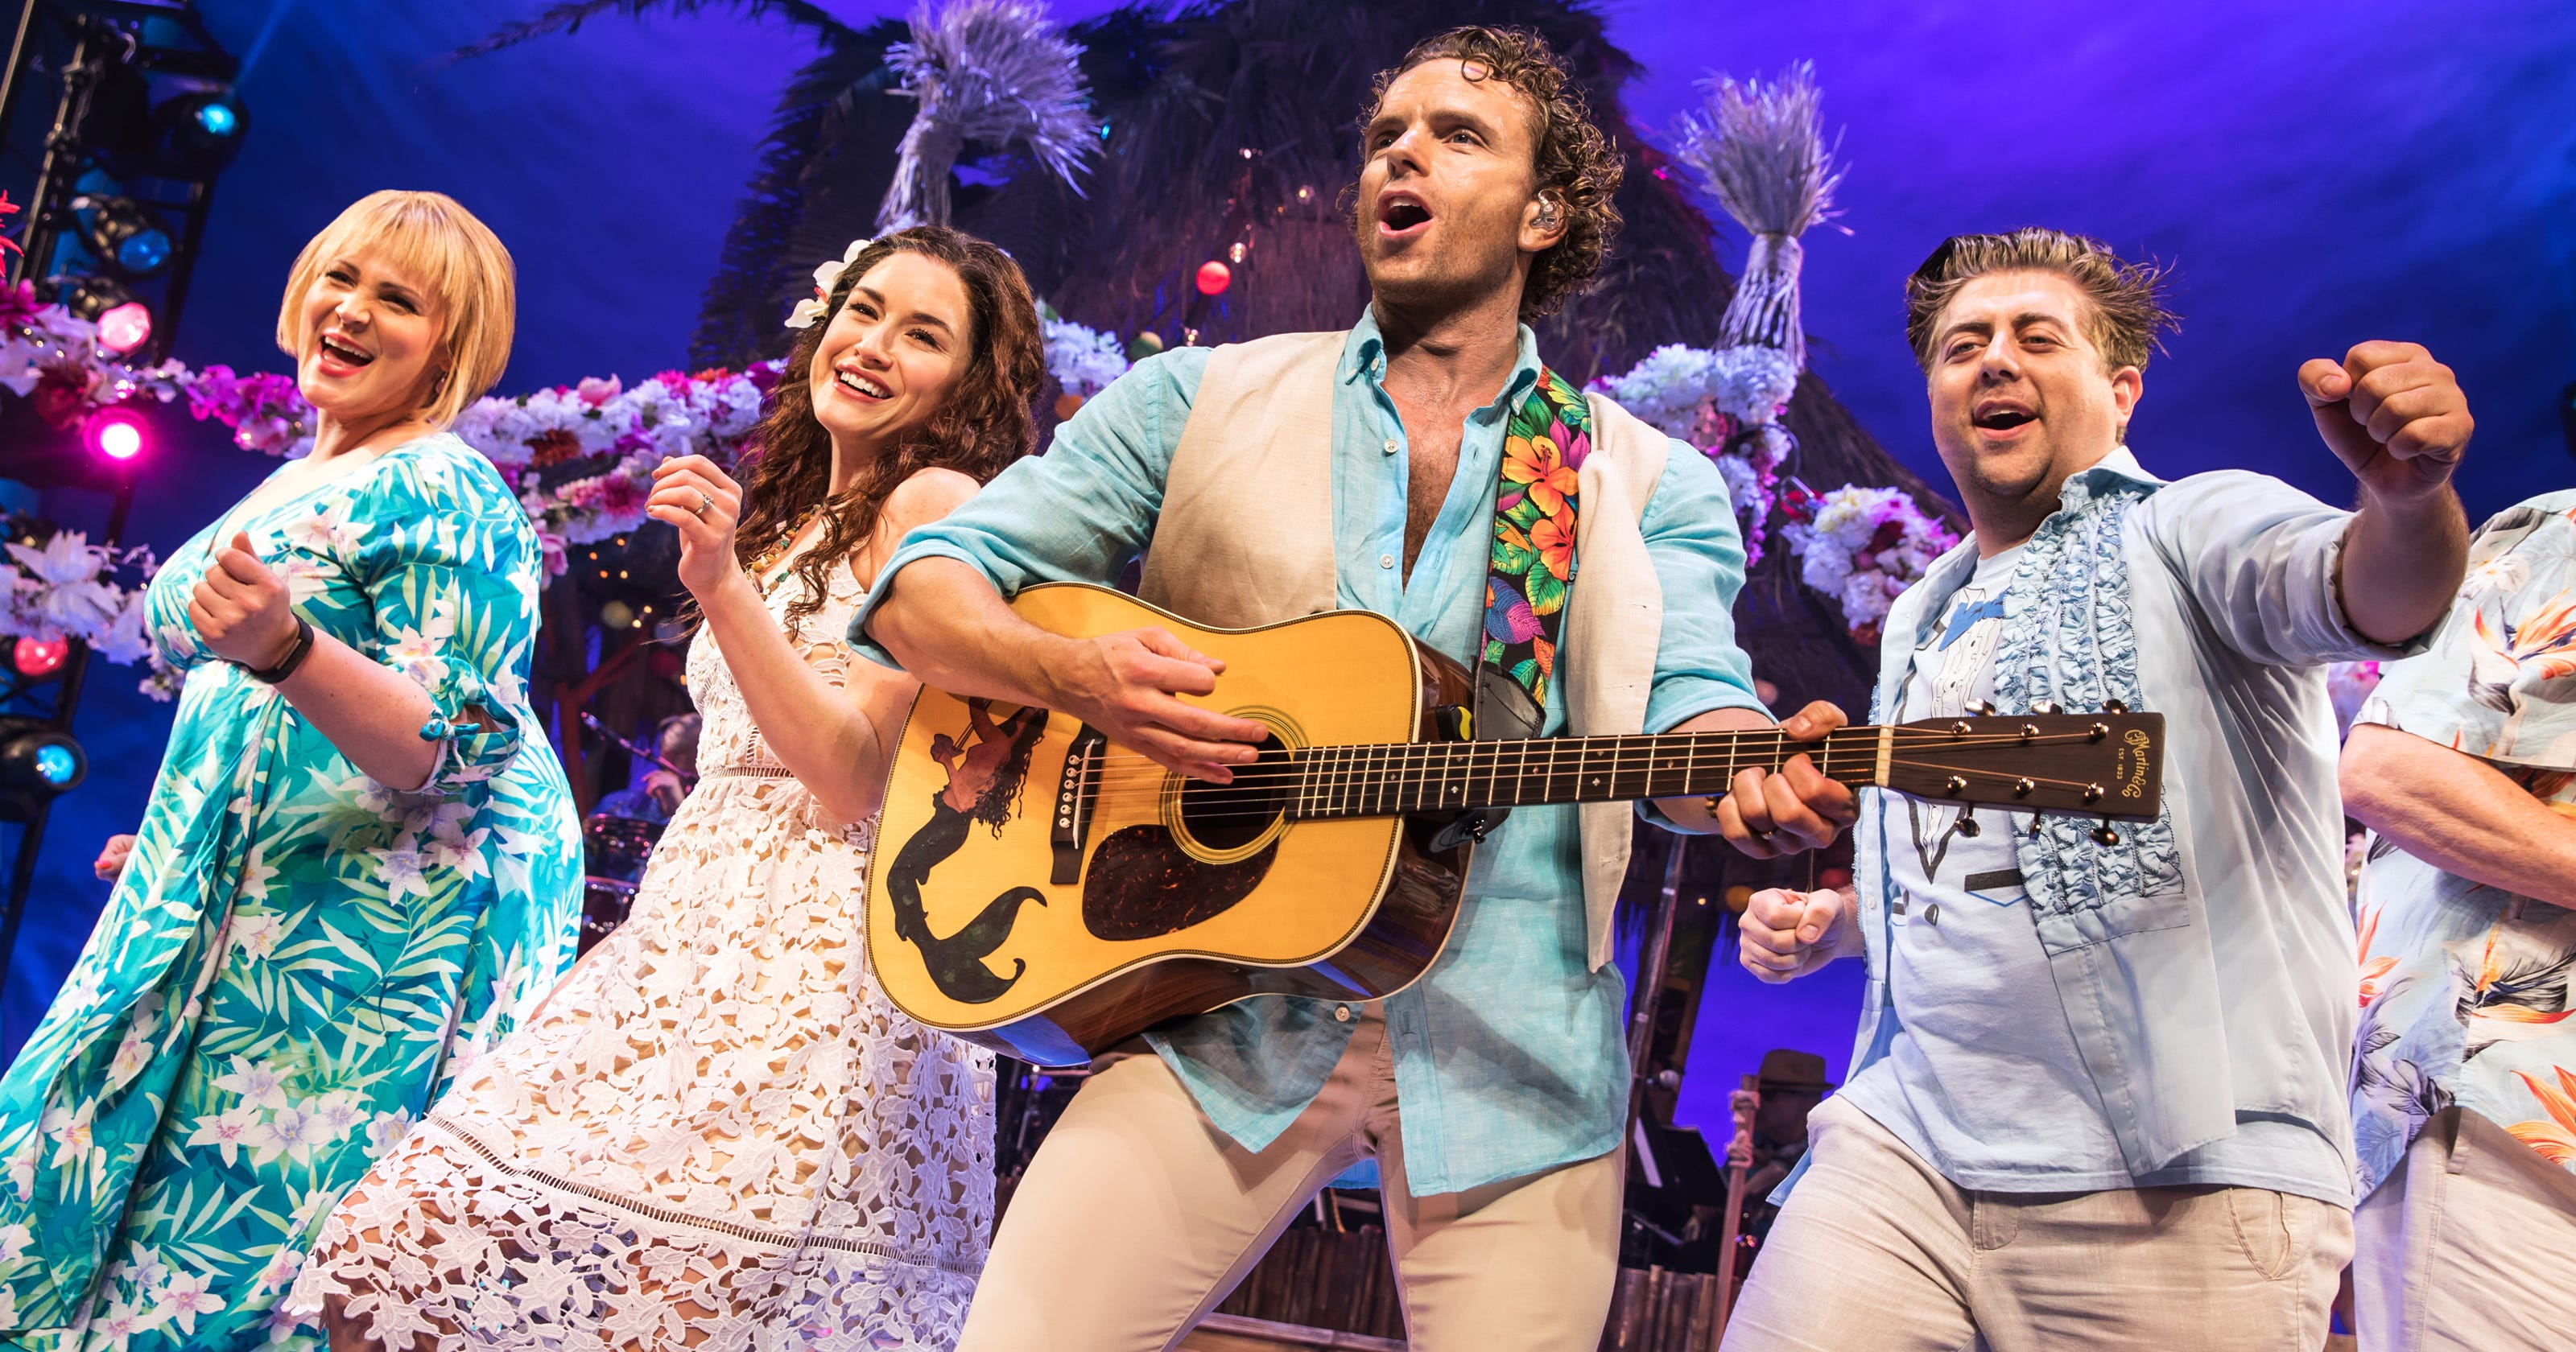 Jimmy Buffett's 'Margaritaville' is a boozy Broadway show for